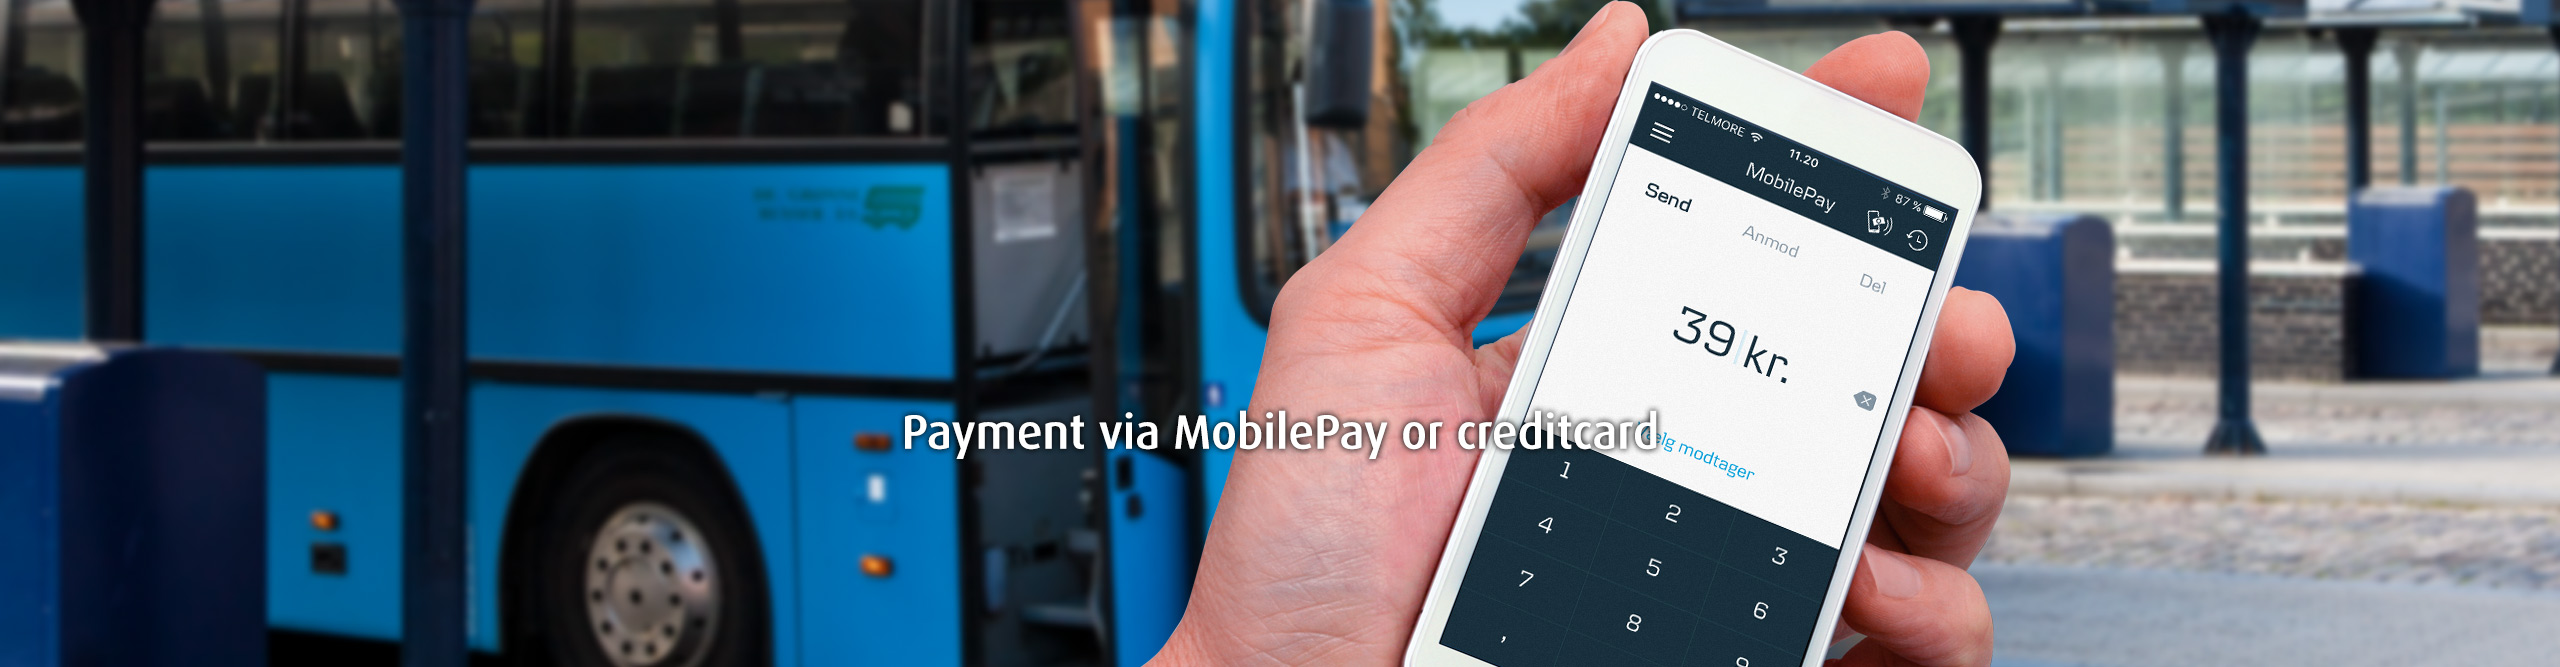 Payment via MobilePay or creditcard.